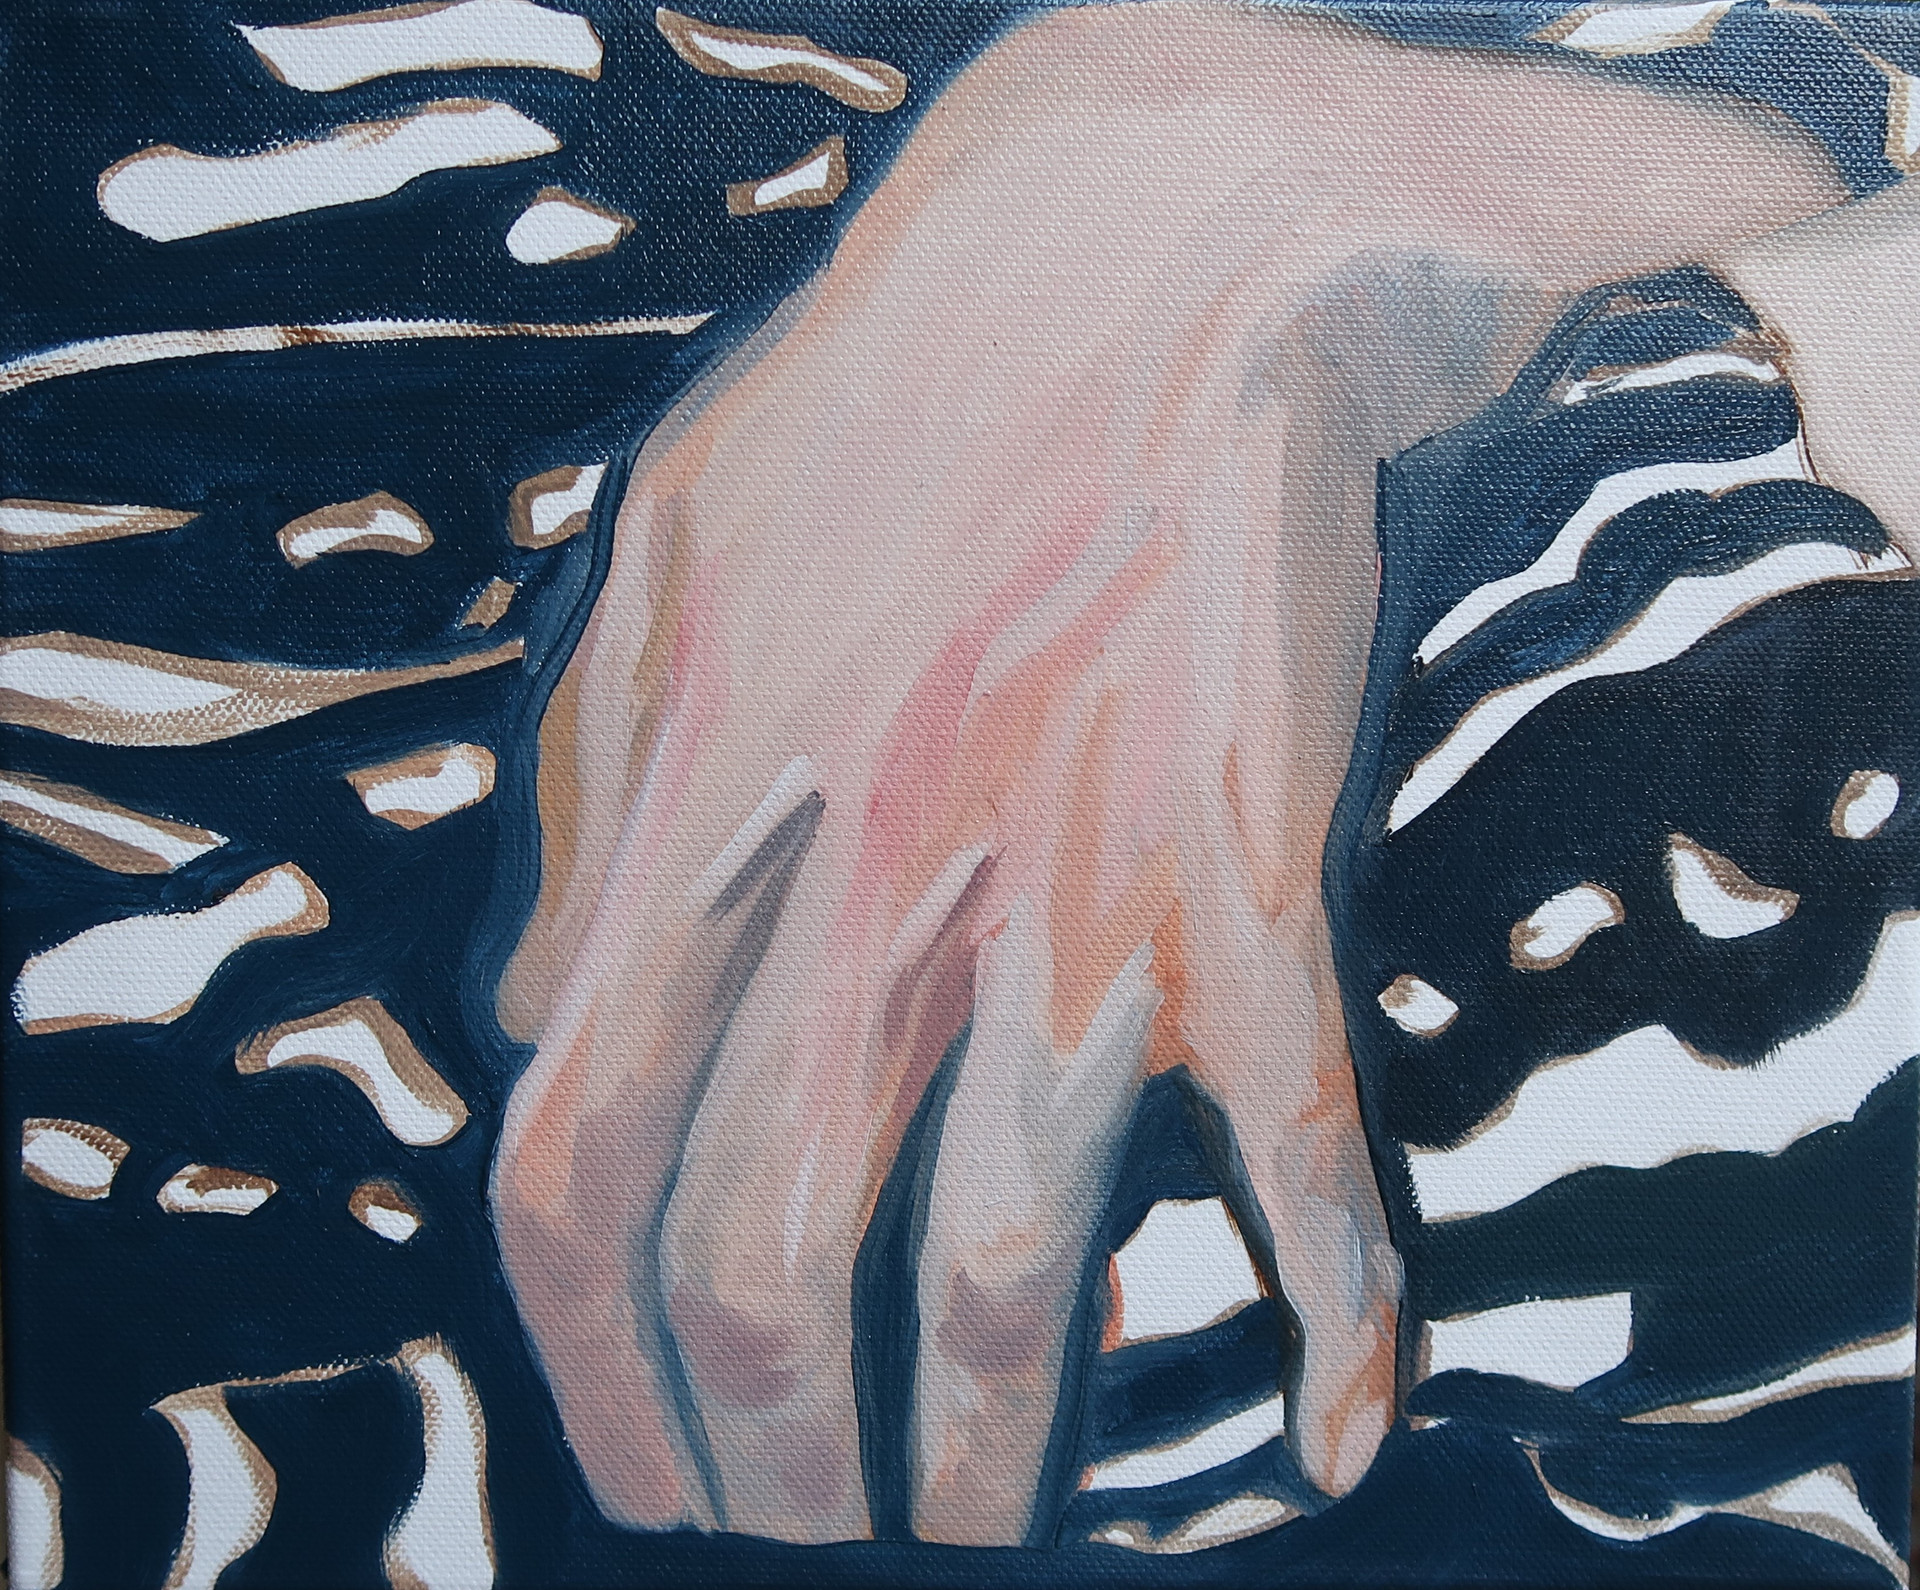 Dirty Hands  _ Natacha Van de Reck _ 2020